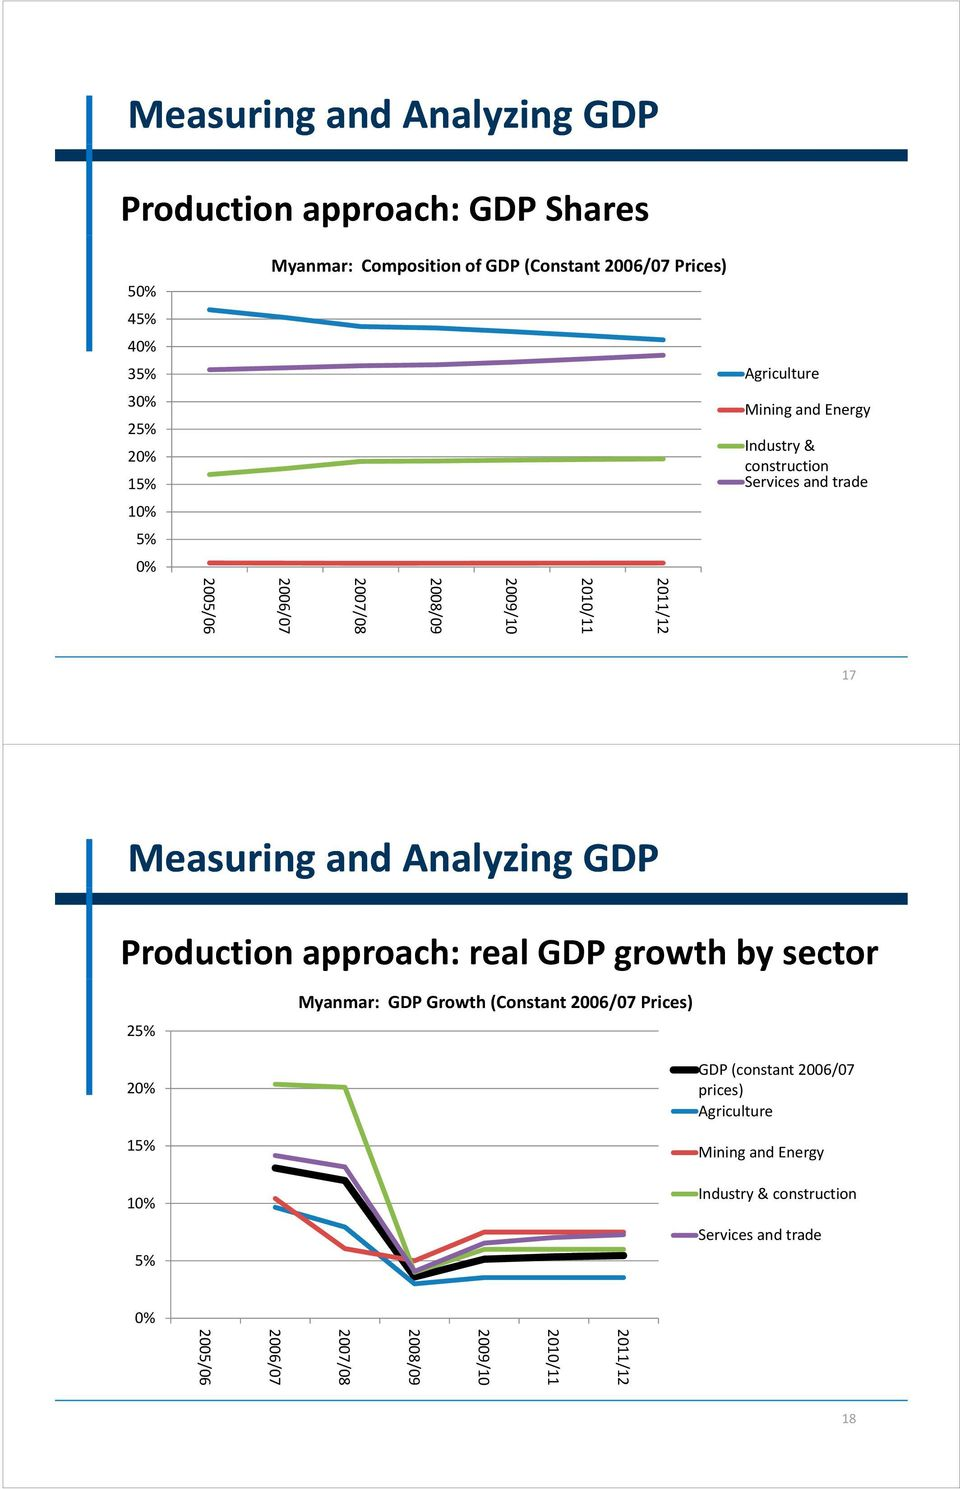 Measuring and Analyzing GDP Production approach: real GDP growth by sector 25% Myanmar: GDP Growth (Constant 2006/07 Prices) 20% 15% 10% 5% GDP (constant